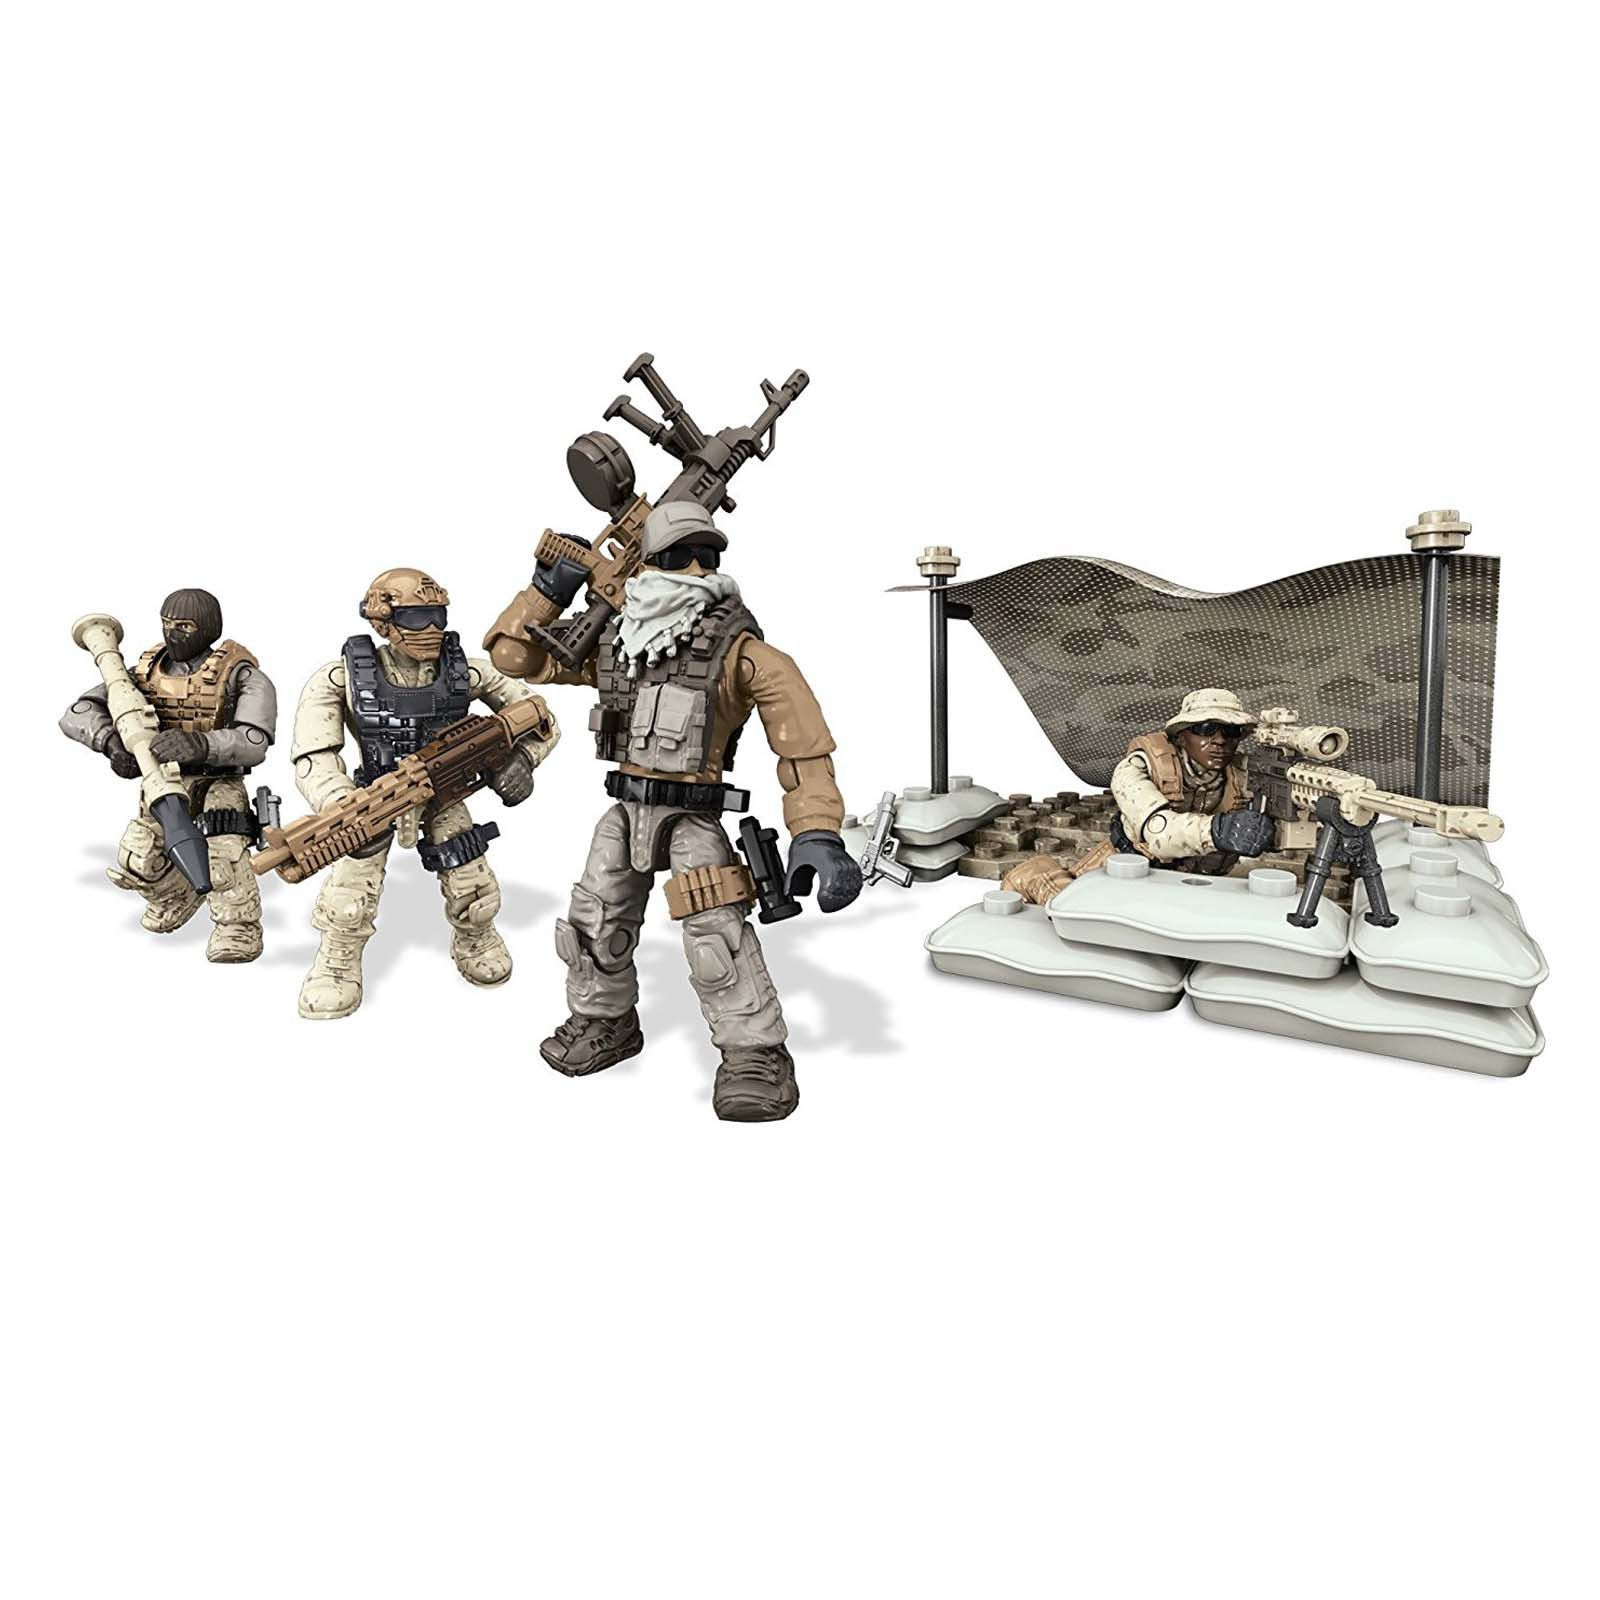 CALL OF DUTY Mega Bloks ARCTIC SOLDIERS Military Lego-type Building Set Age 10+